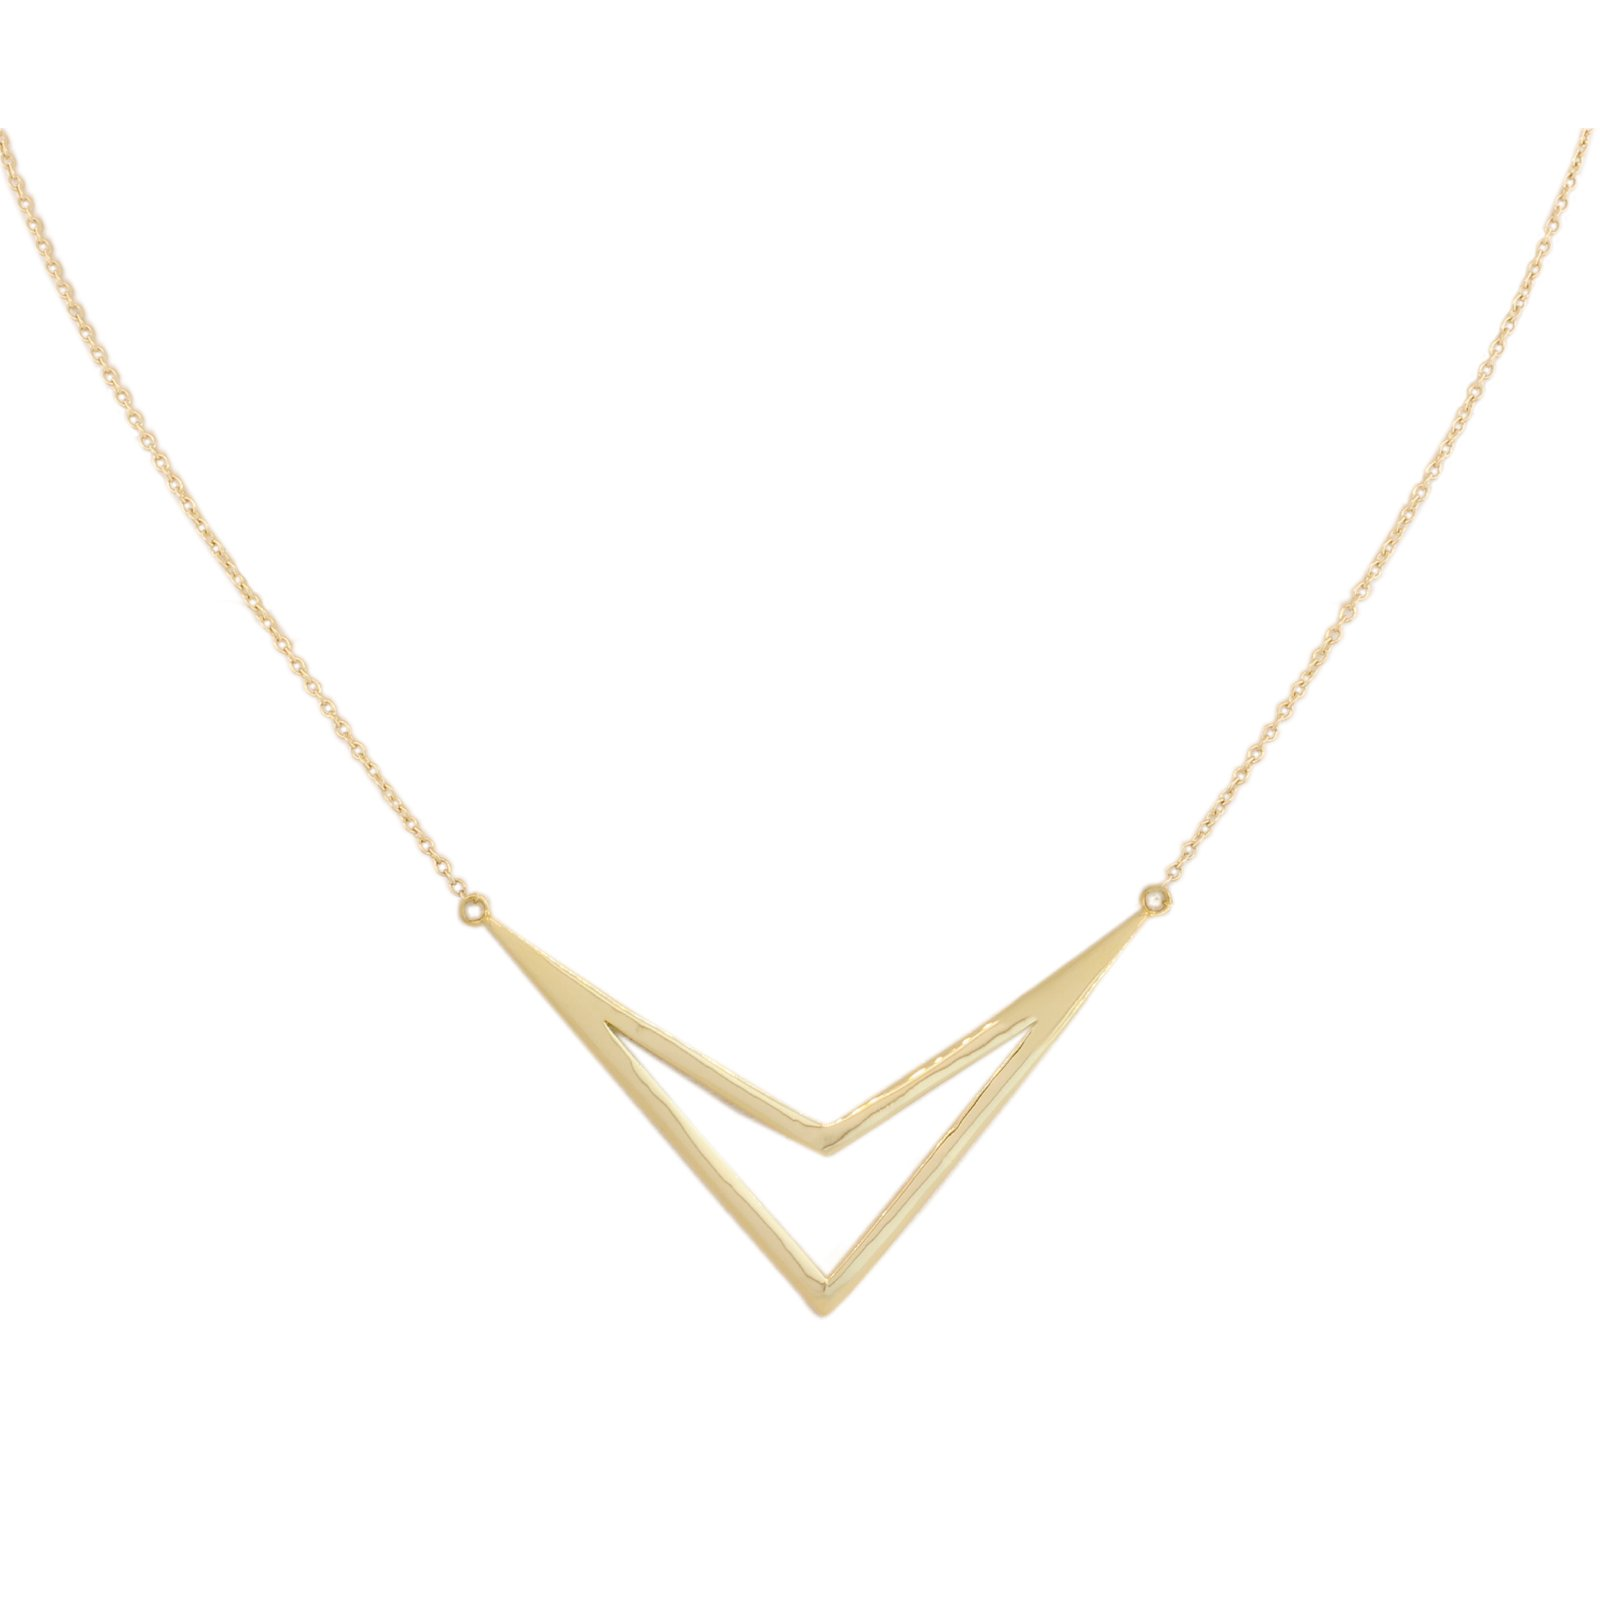 Stackable Style Arrow Necklace Yellow Gold 14k Necklace Trendy Arrow 17 inch by MyLo Designs